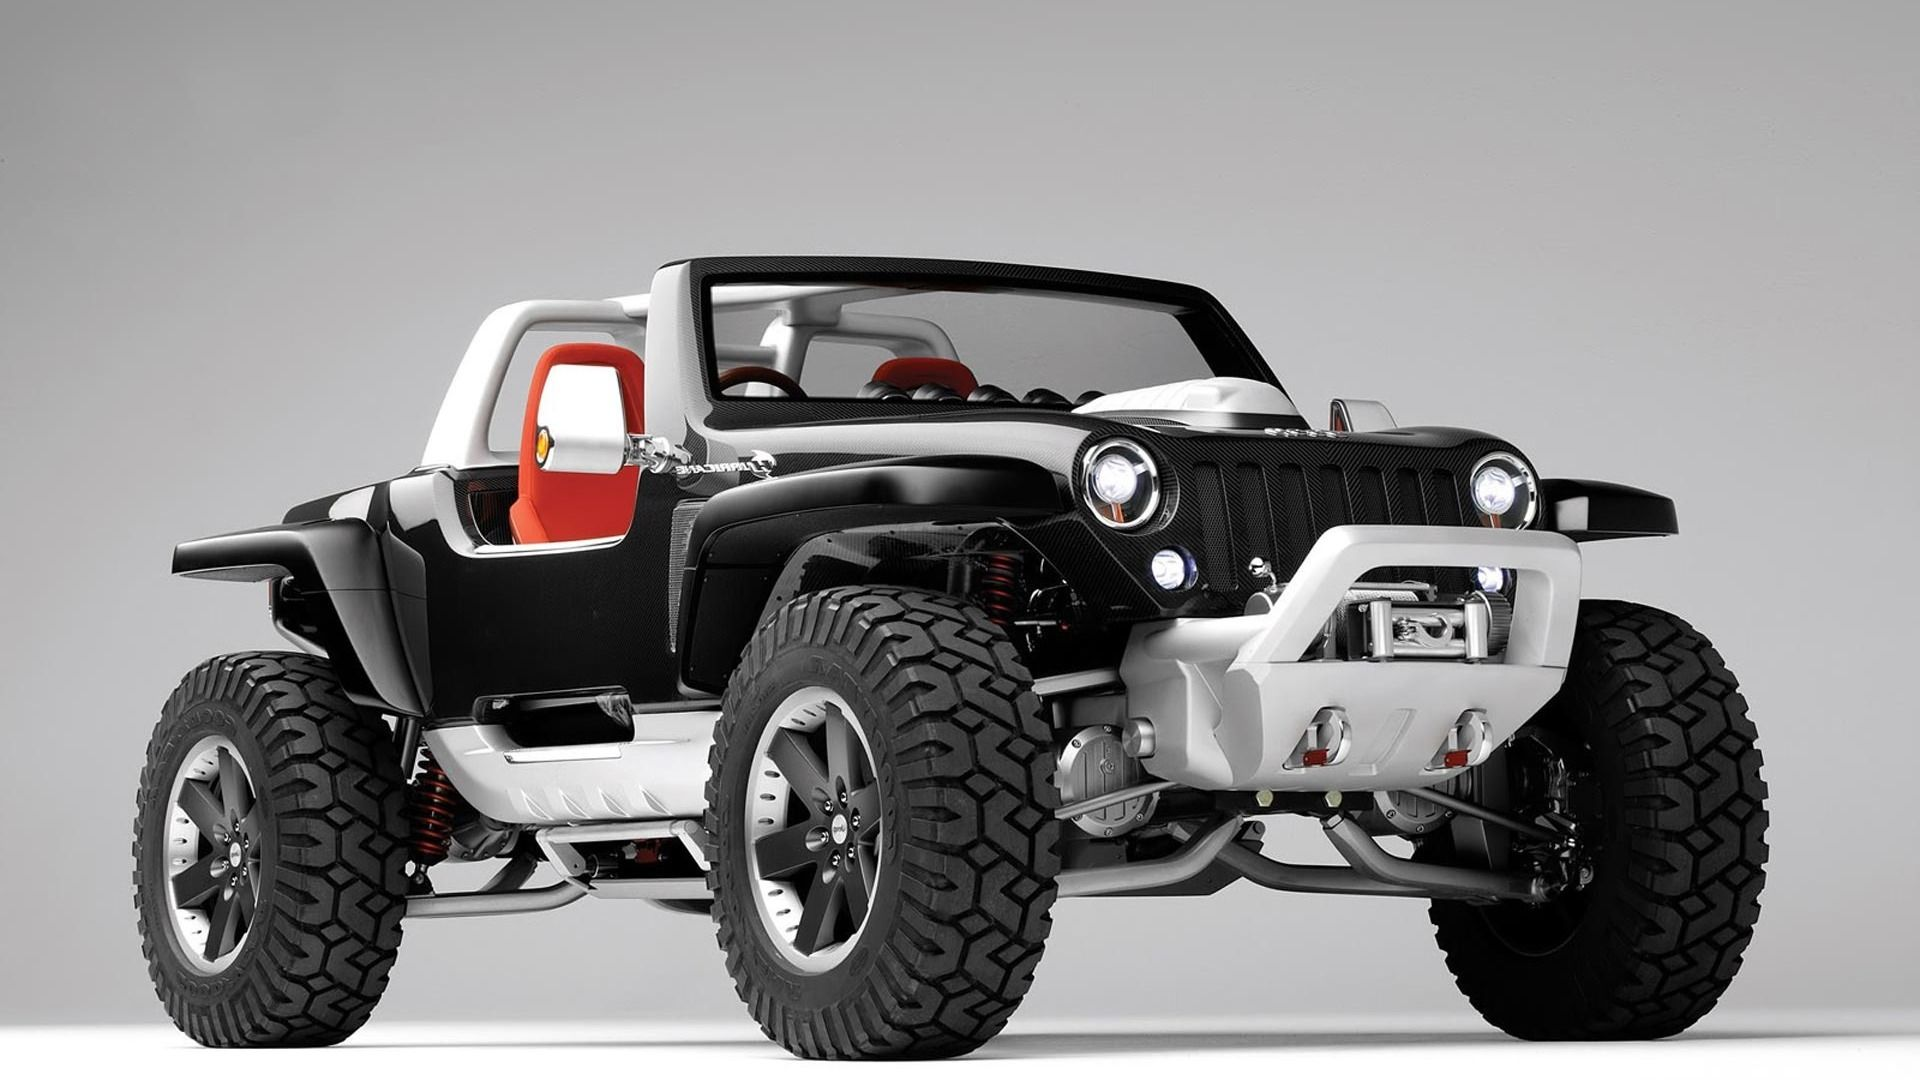 Jeep Hurricane Awesome Off Roader The Off Road Concepts Had A Higher Bar Set By Jeep Hurricane At The North America Interna Jeep Concept Jeep Cars Vehicles